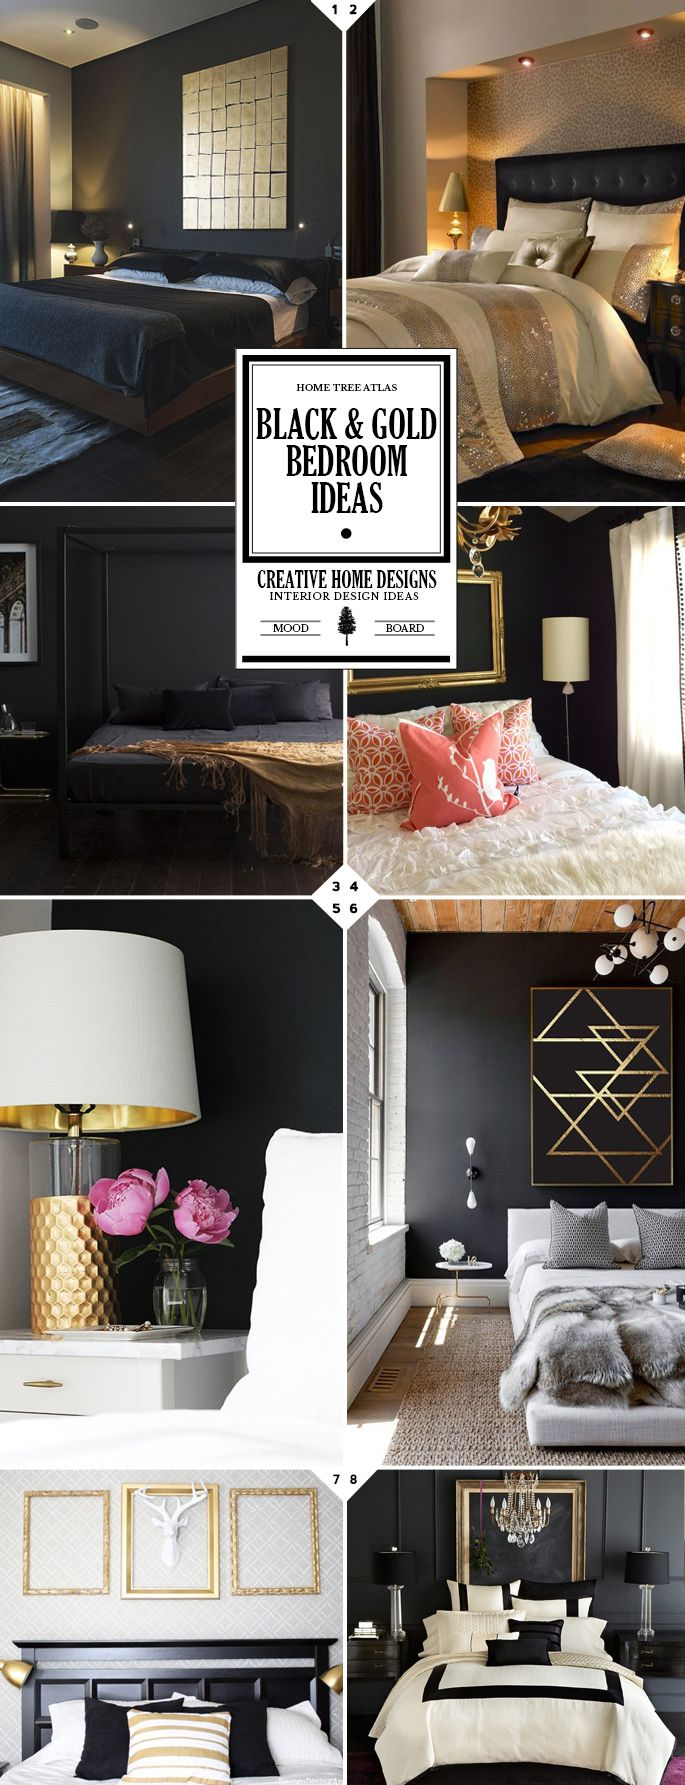 Best 25+ Black gold decor ideas on Pinterest | Black and gold ...